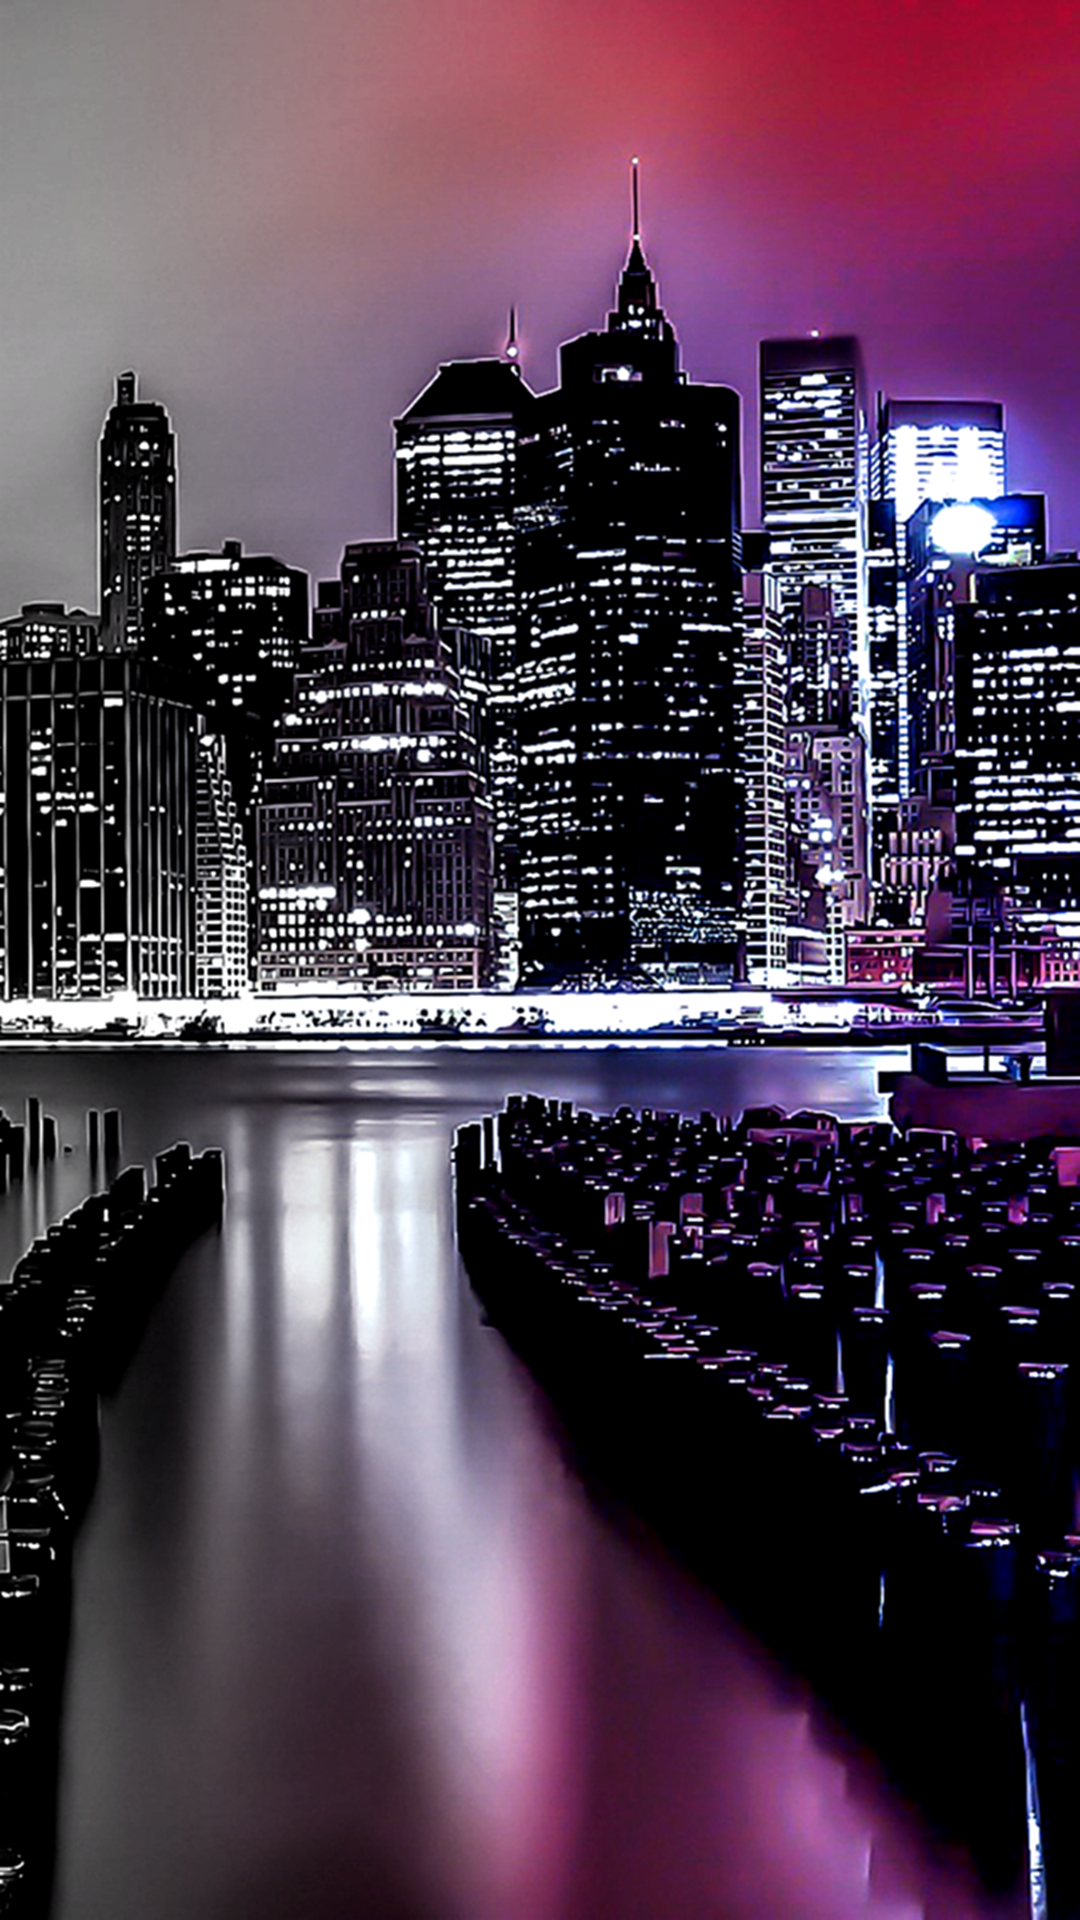 Night City Lights. Gradient light filter iPhone wallpapers